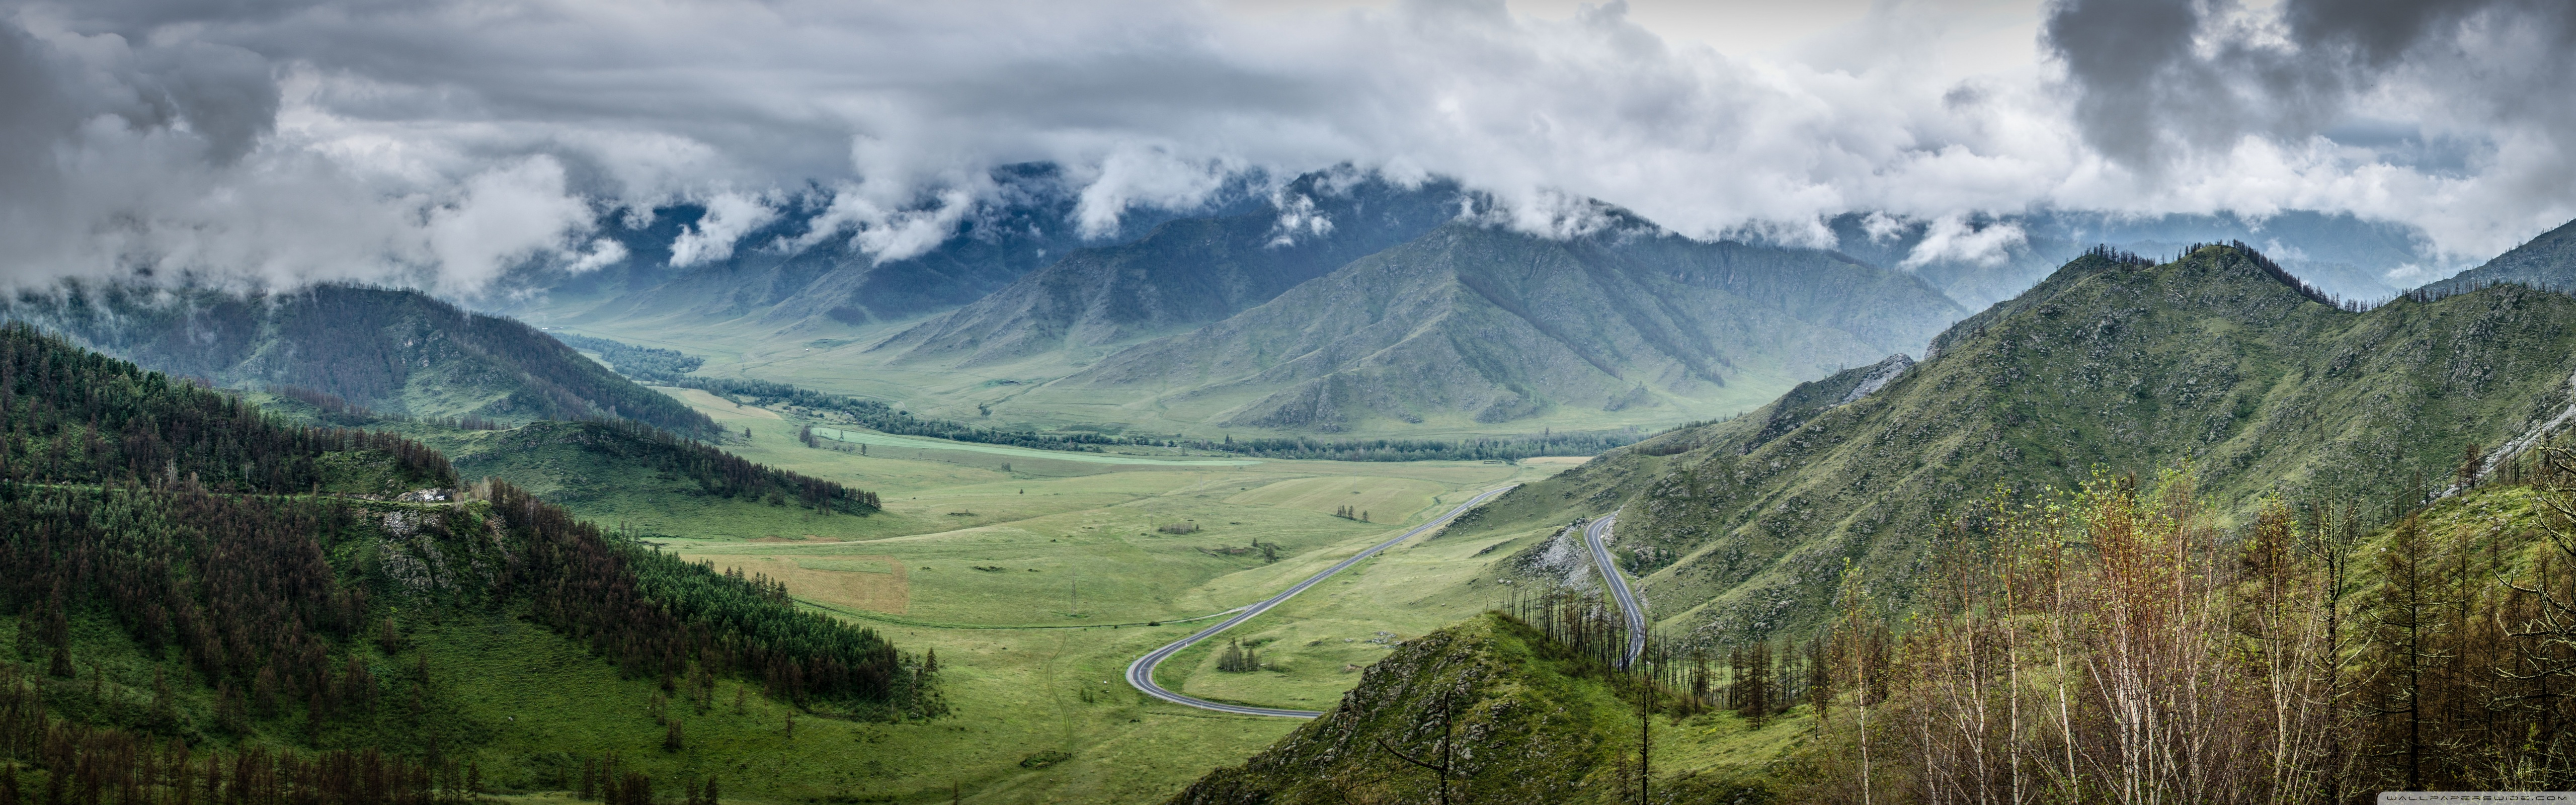 Altai Mountains, Russia HD desktop wallpaper : Widescreen : High